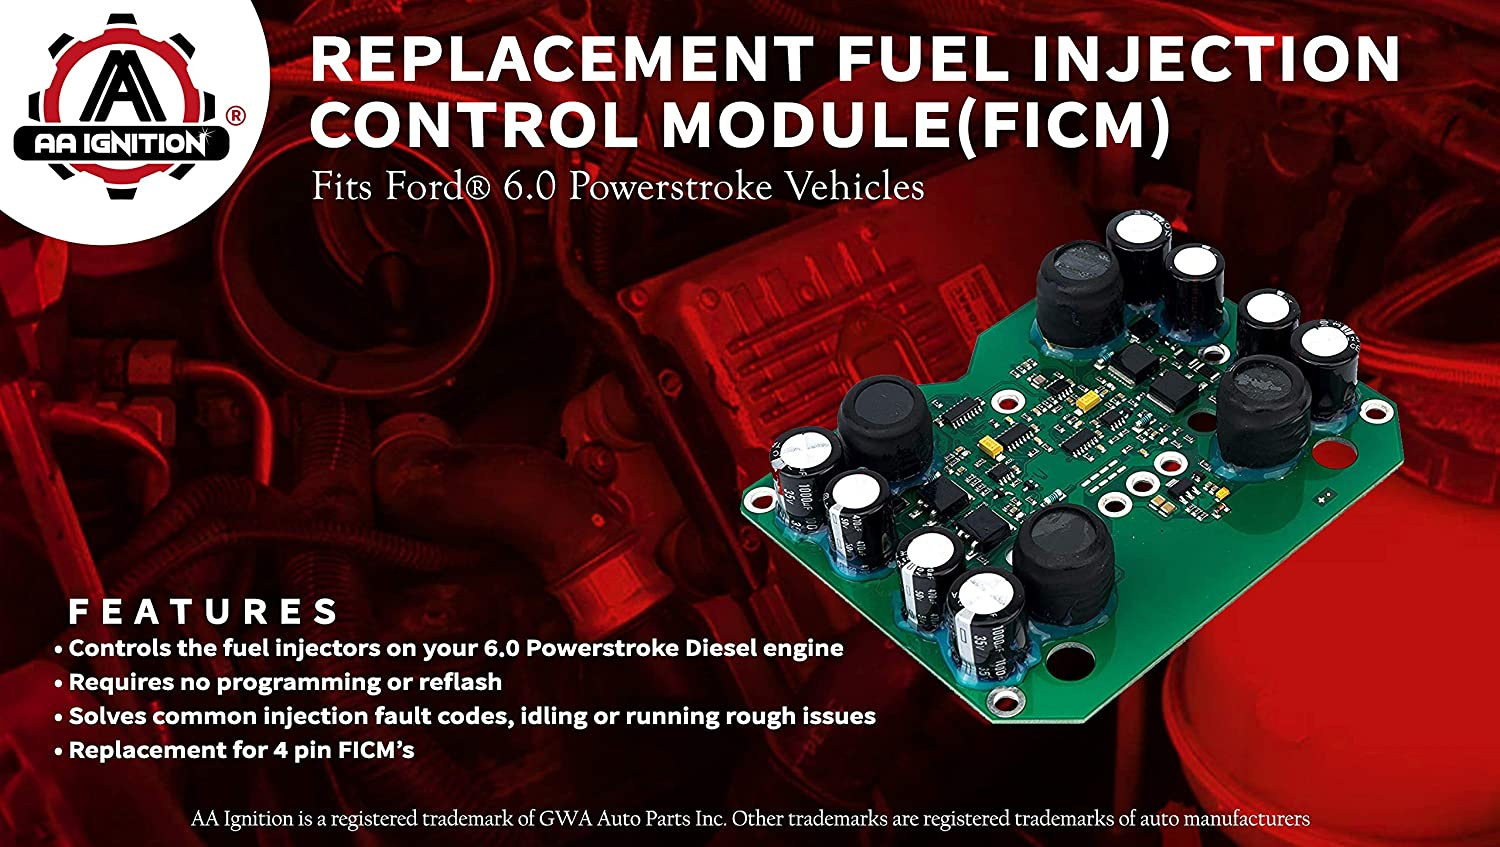 Ficm 60 Powerstroke Fuel Injection Control Module 2006 Ford F 250 Filter Location Fits F250 F350 F450 F550 Excursion 60l Diesel Super Duty Replaces 904 229